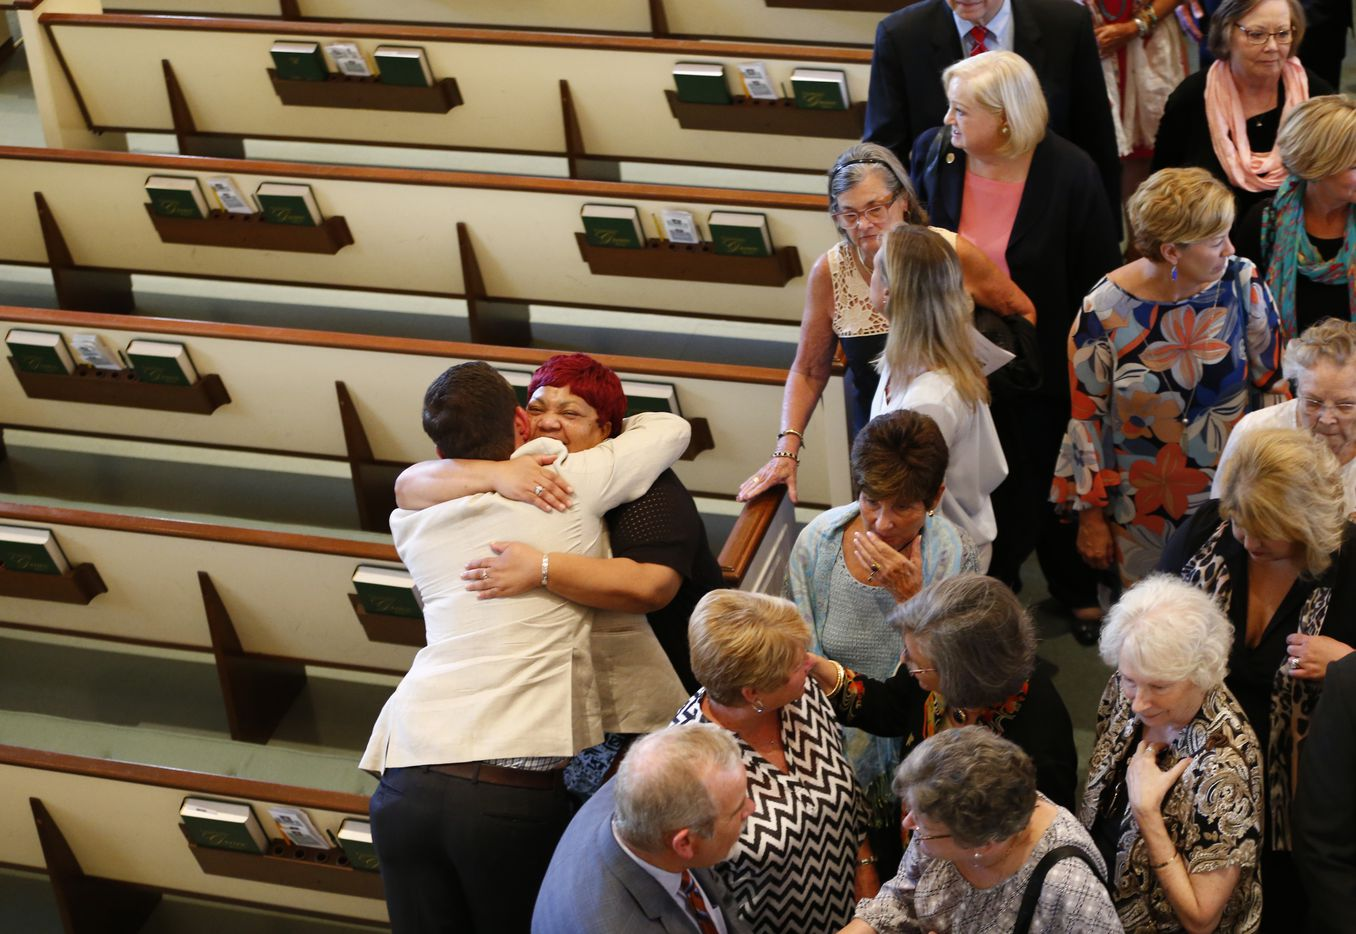 People great each other after the funeral for Vickie Vivian Paulette Thompson at Wilshire Baptist Church in Dallas on July 13, 2017.